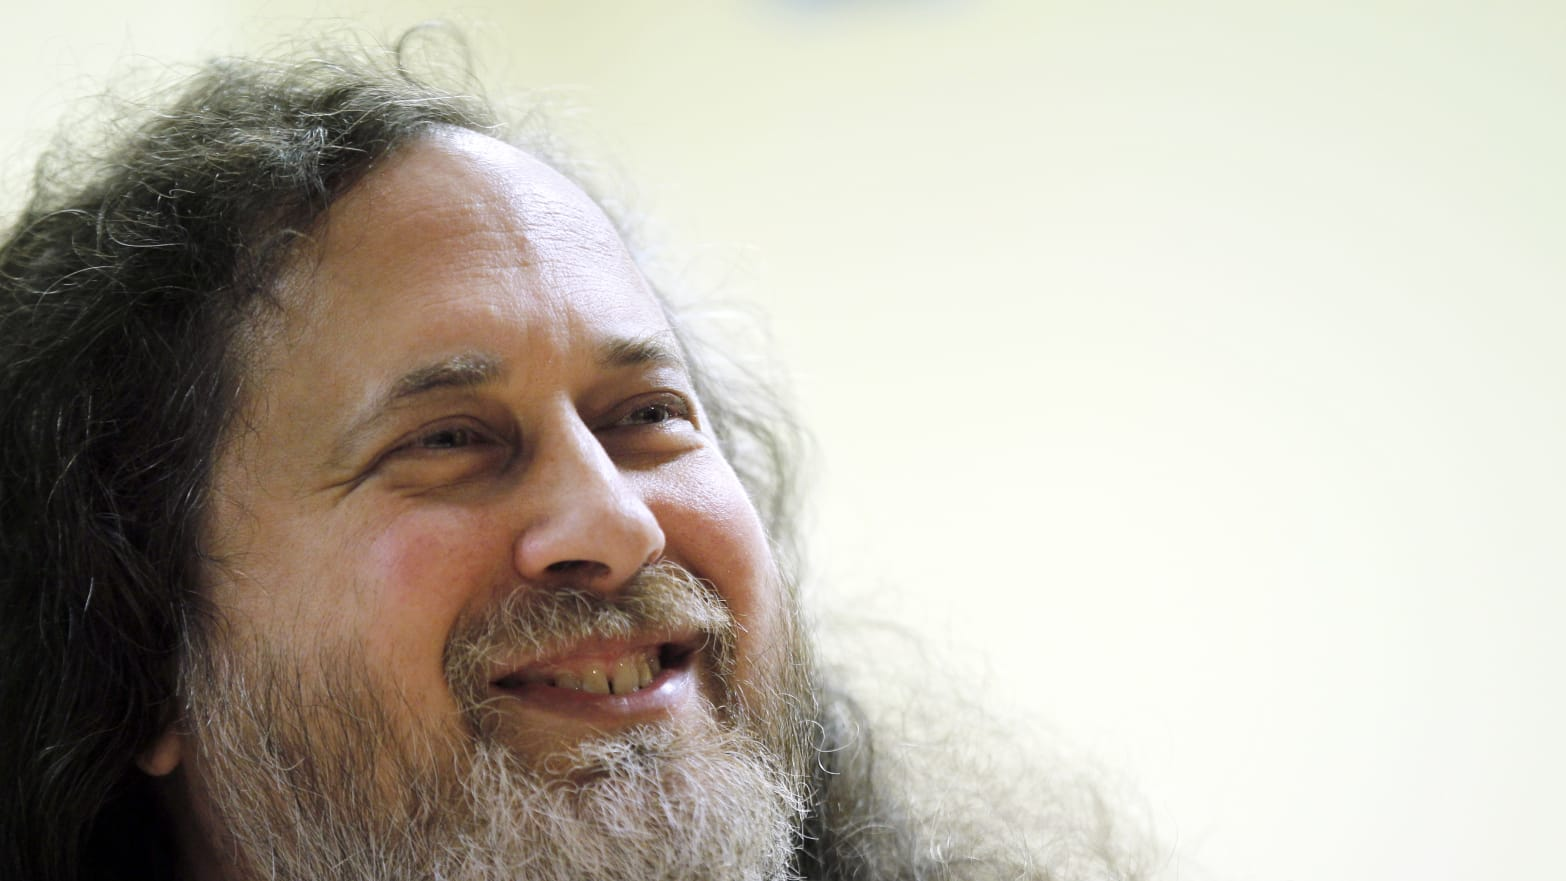 Richard Stallman, Famed MIT Computer Scientist Who Defended Jeffrey Epstein, Resigns